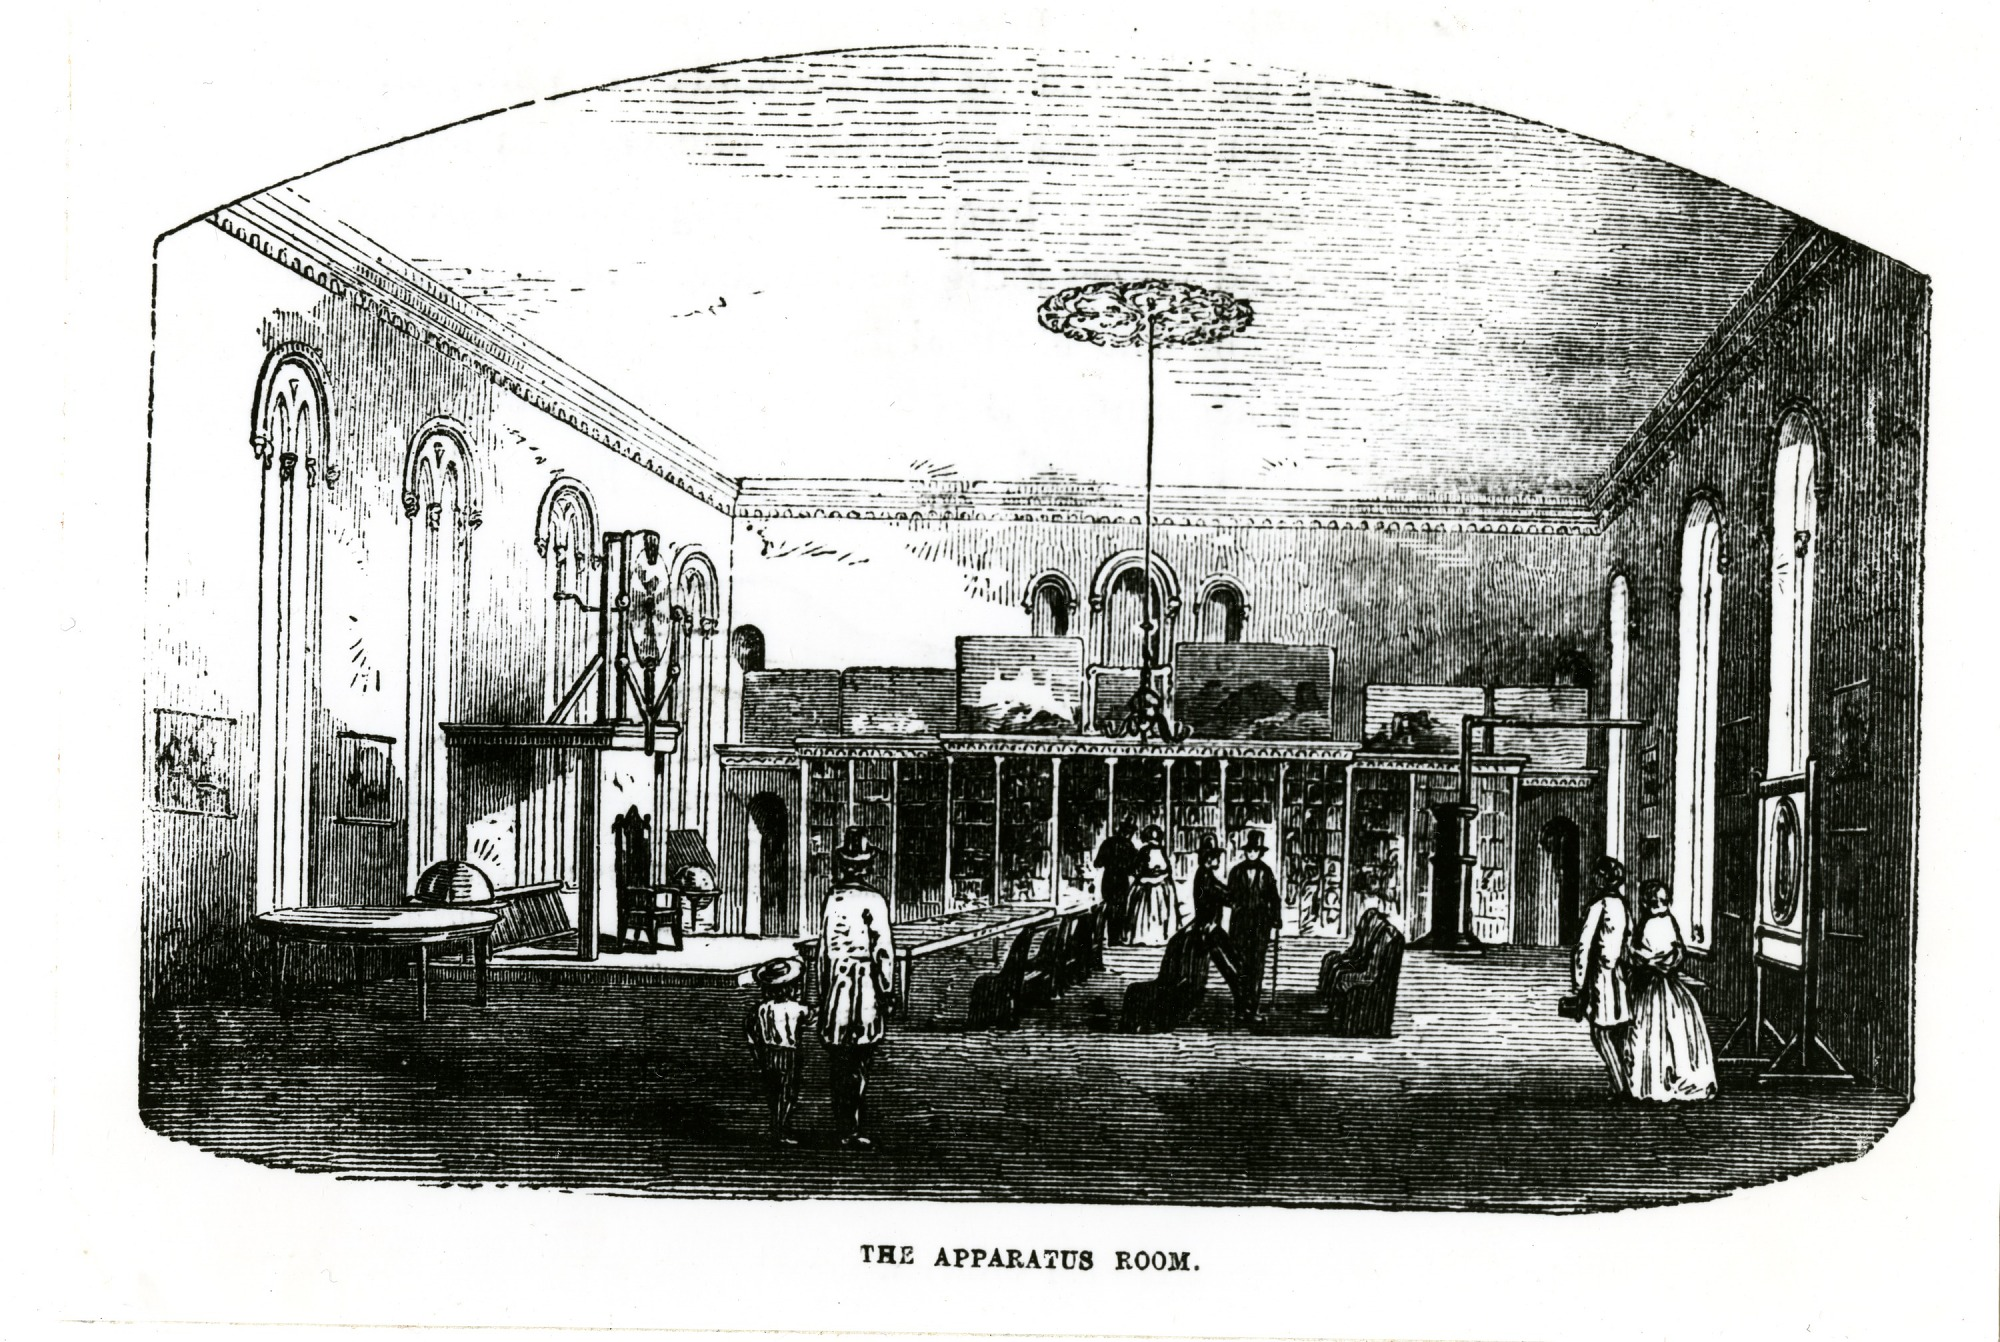 Apparatus Room in the Smithsonian Institution Building